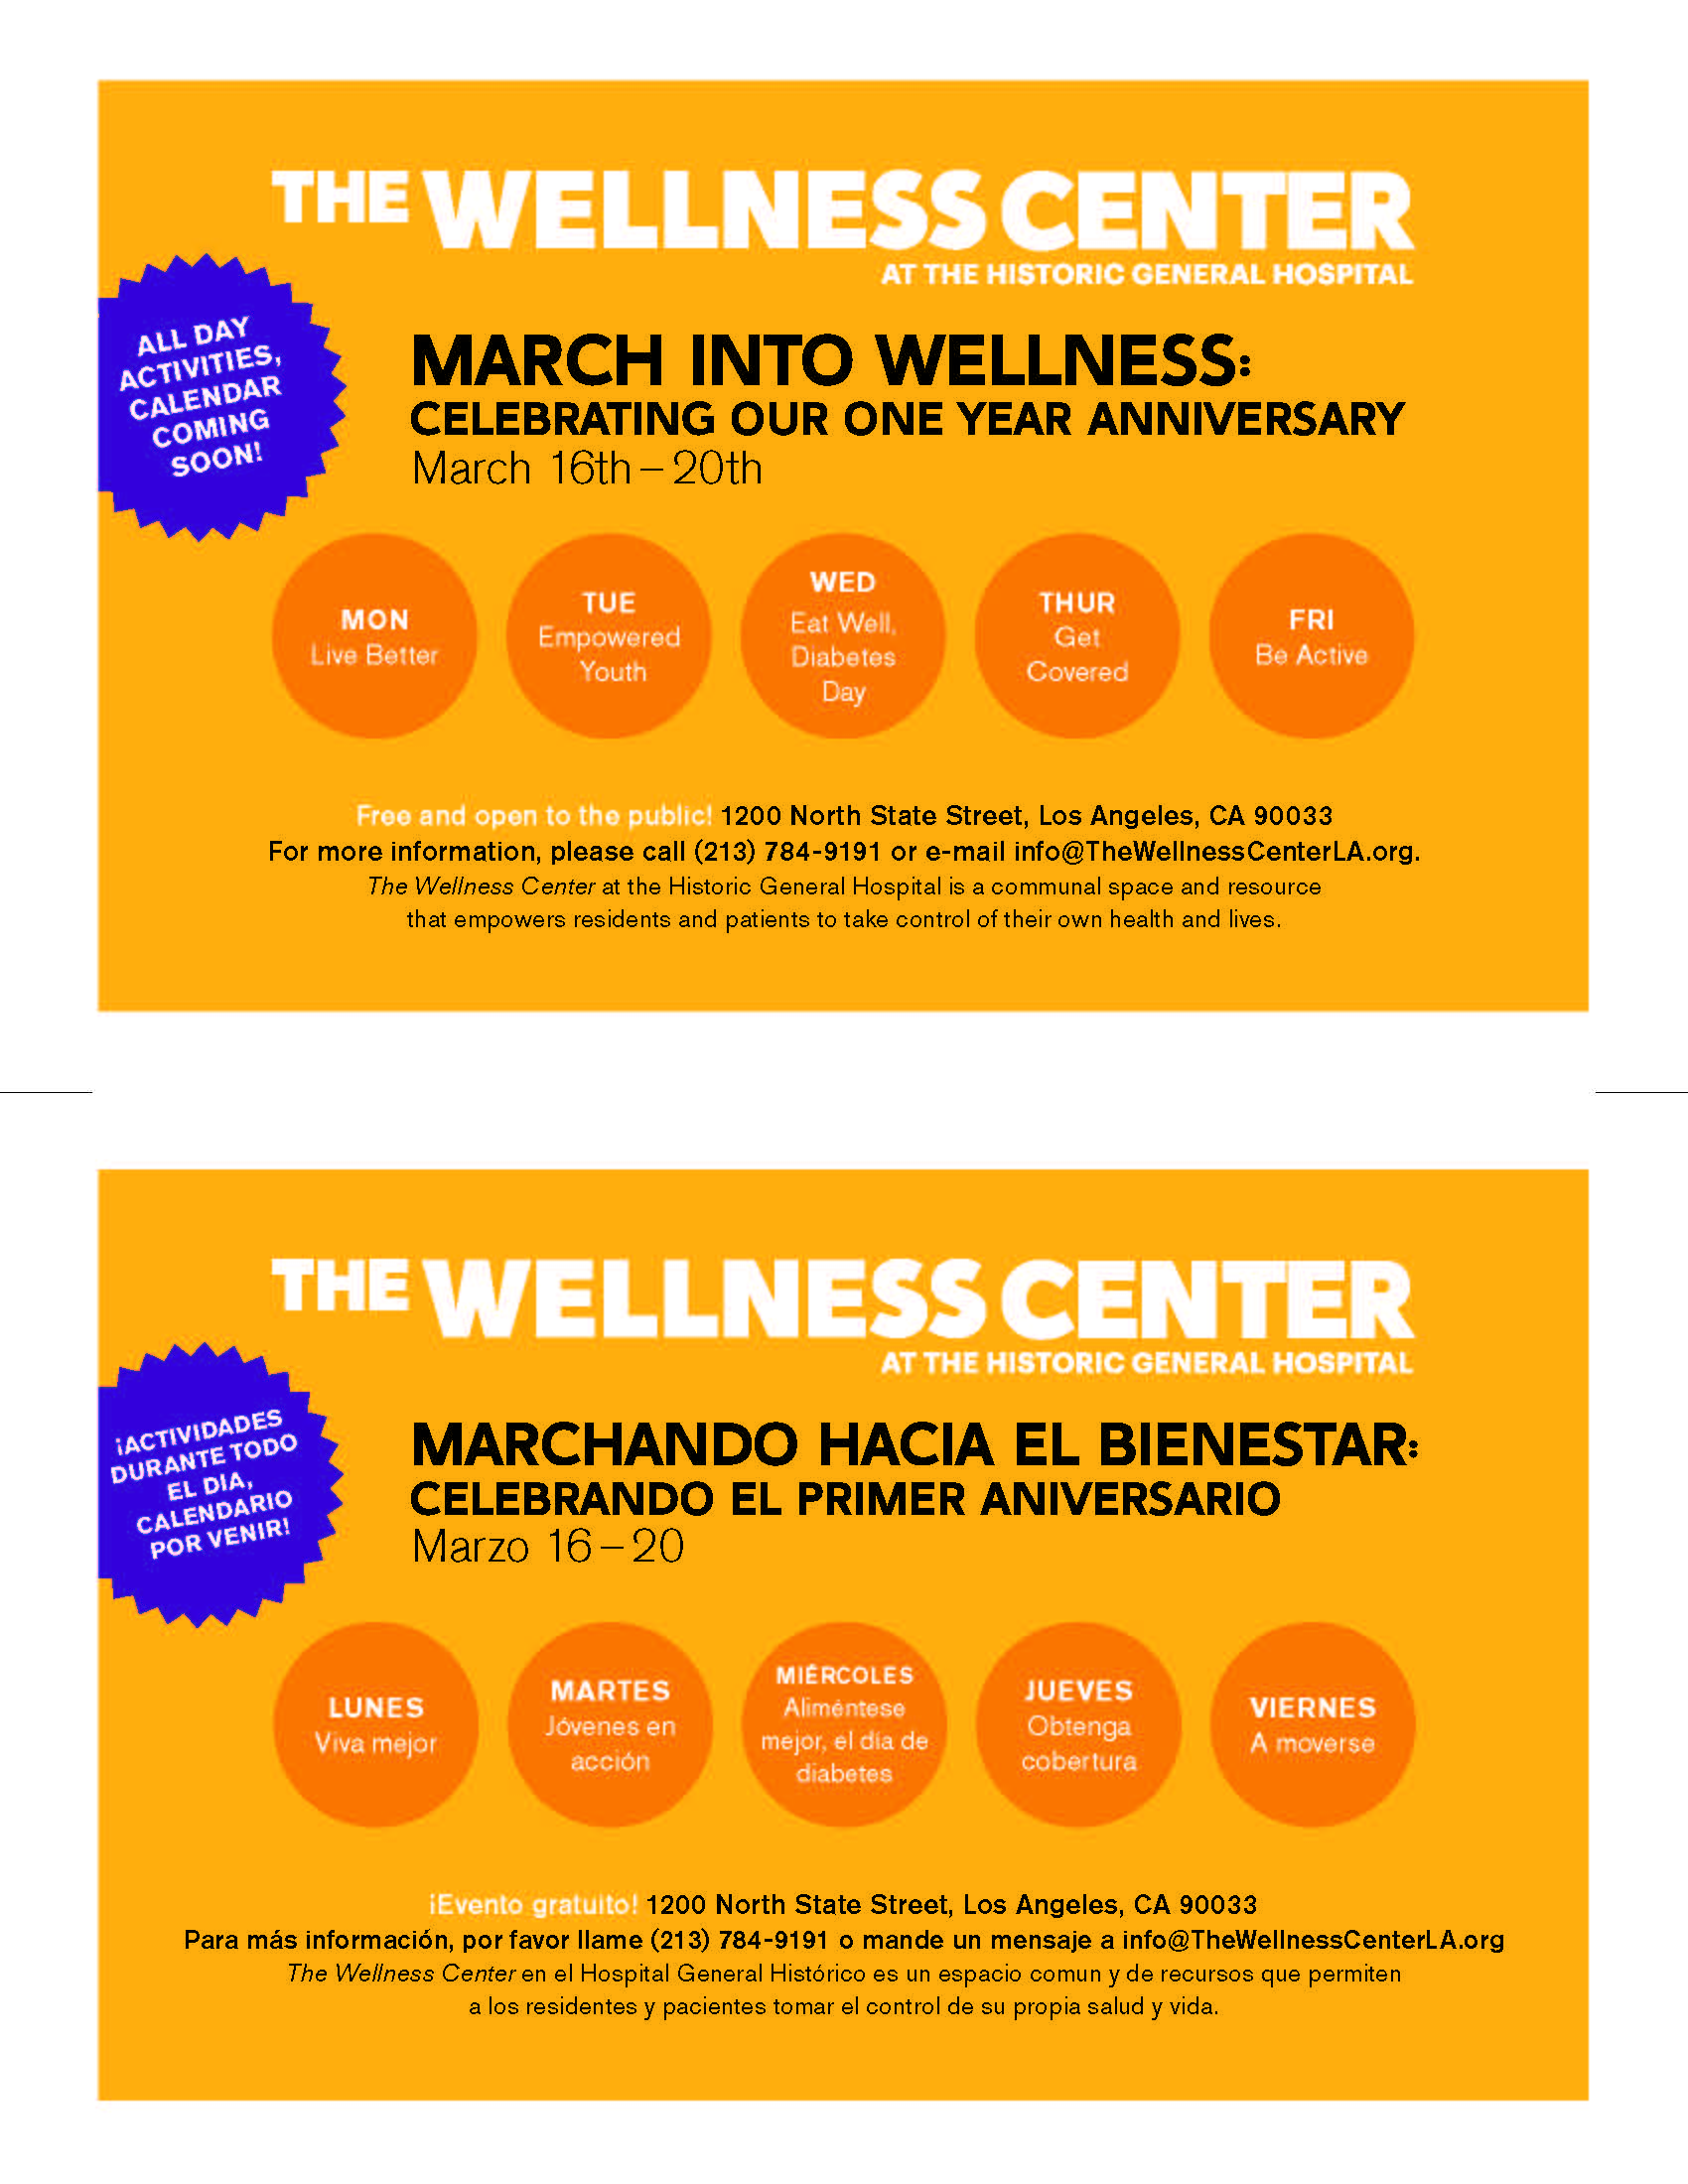 Coming Soon Calendario.The Wellness Center S March Into Wellness Boyle Heights Beat